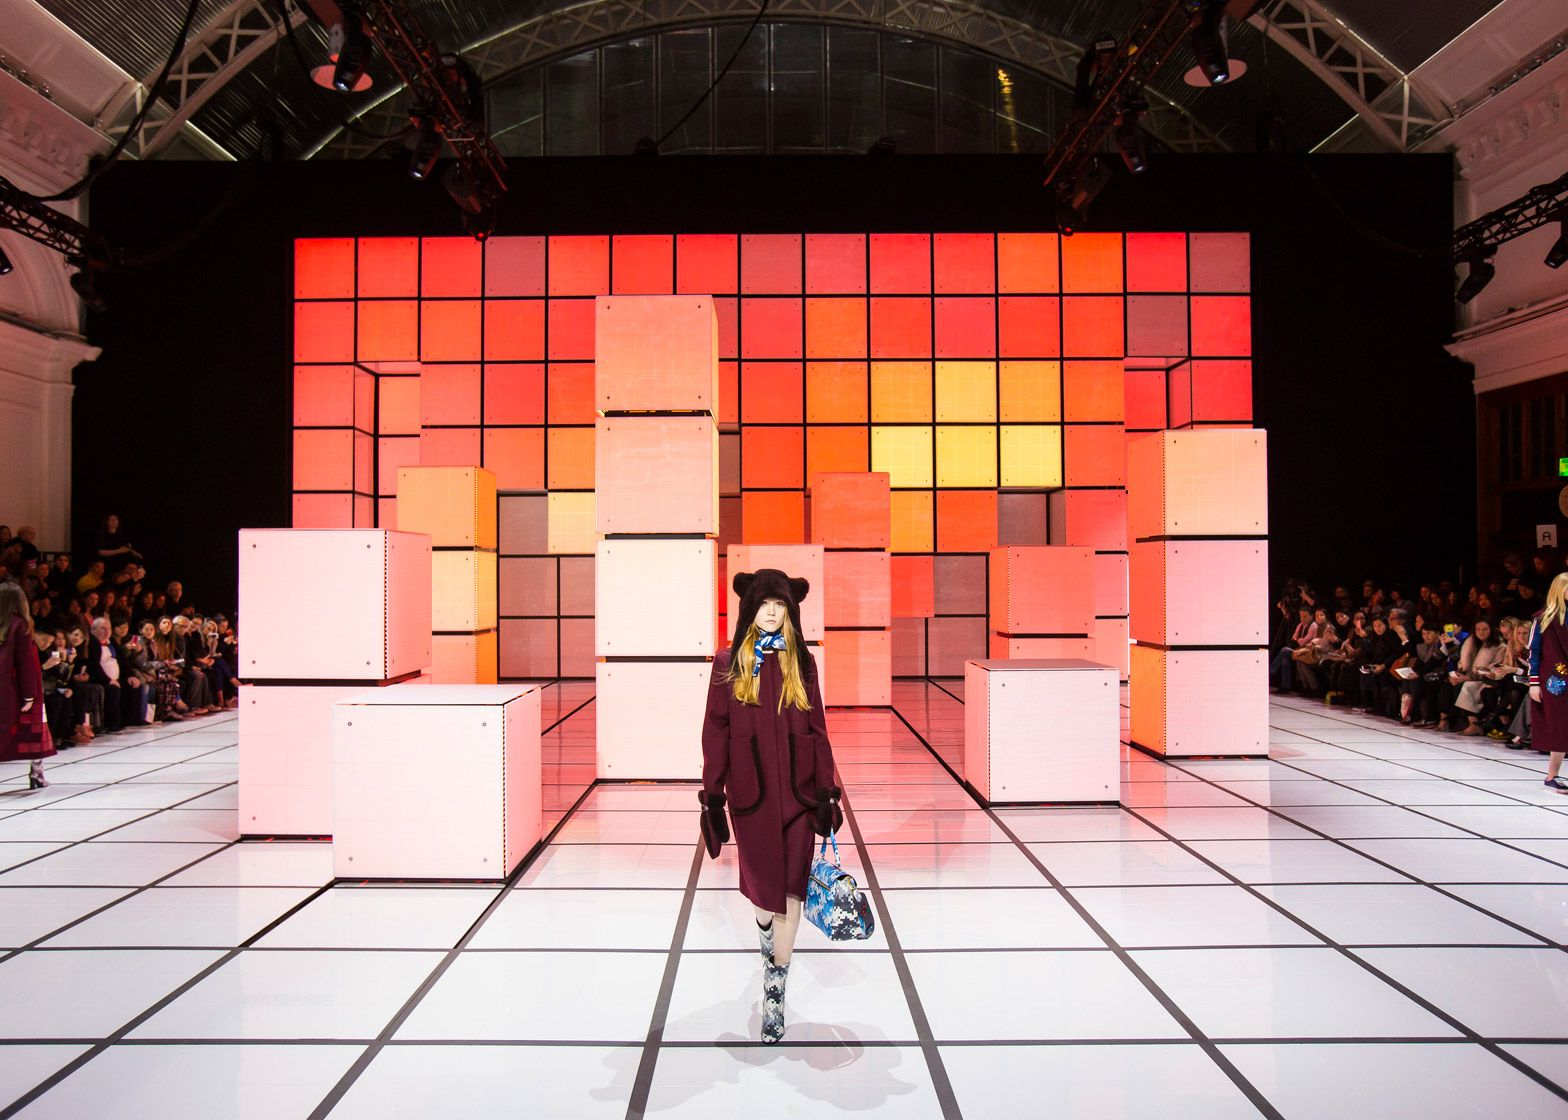 INCA Productions creates pixelated set for Anya Hindmarch based on 8-bit graphics and Rubik's cubes